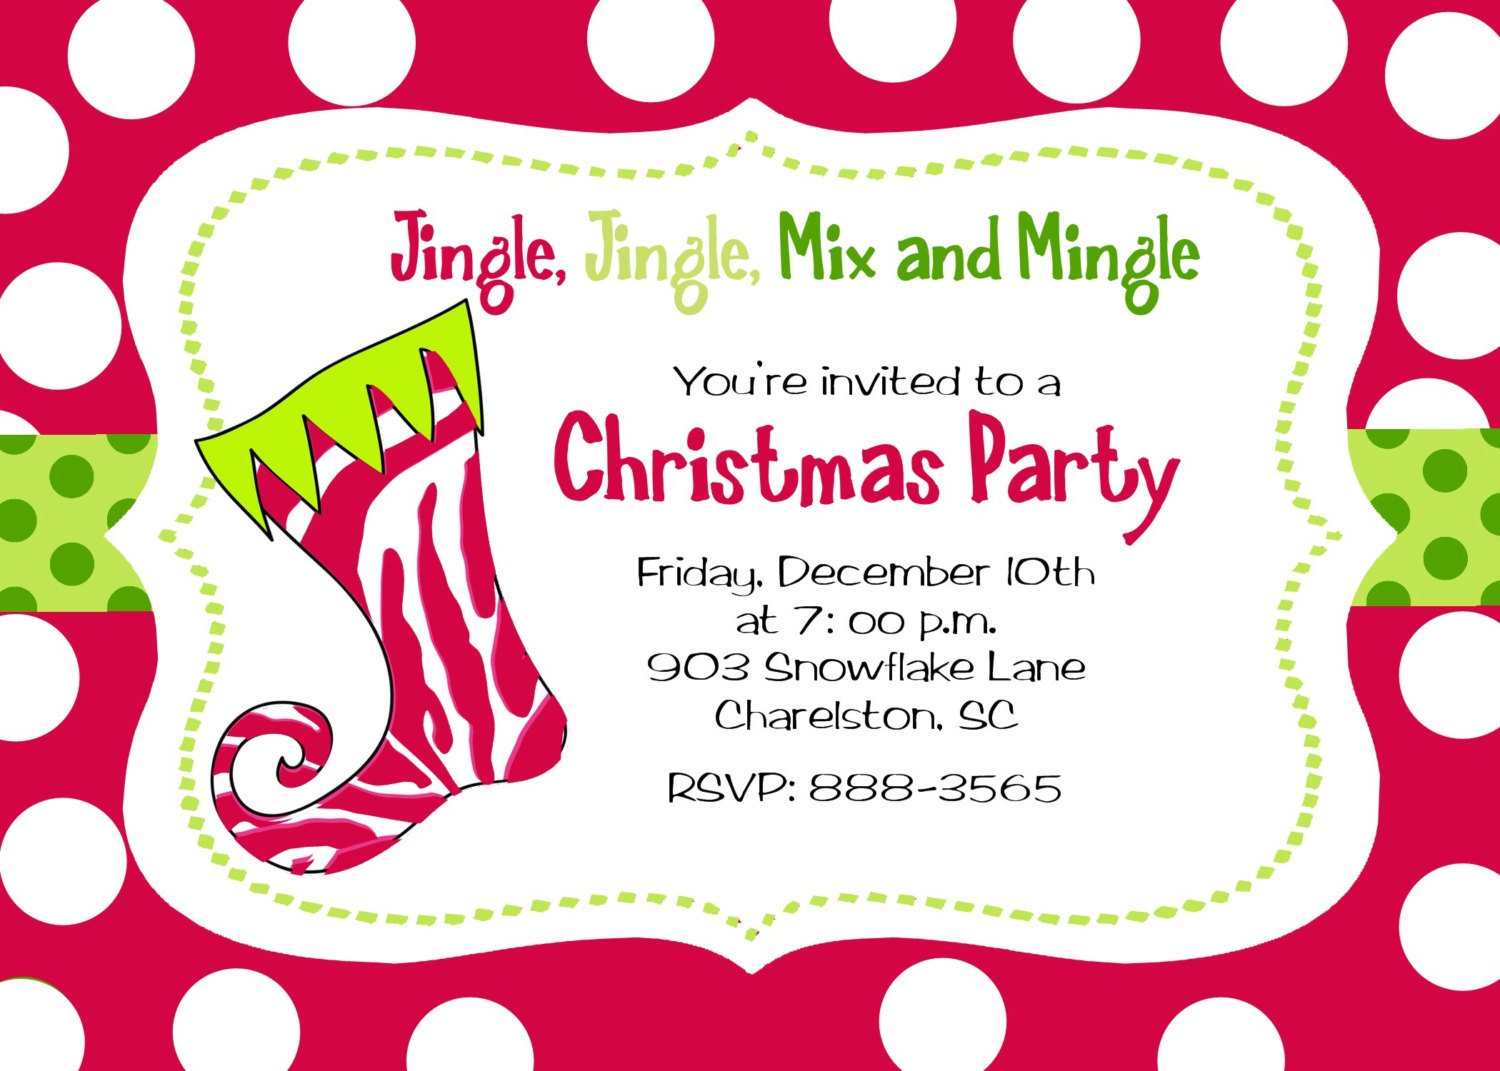 christmas party invitation wording for work unique wedding invitation for christmas party wording